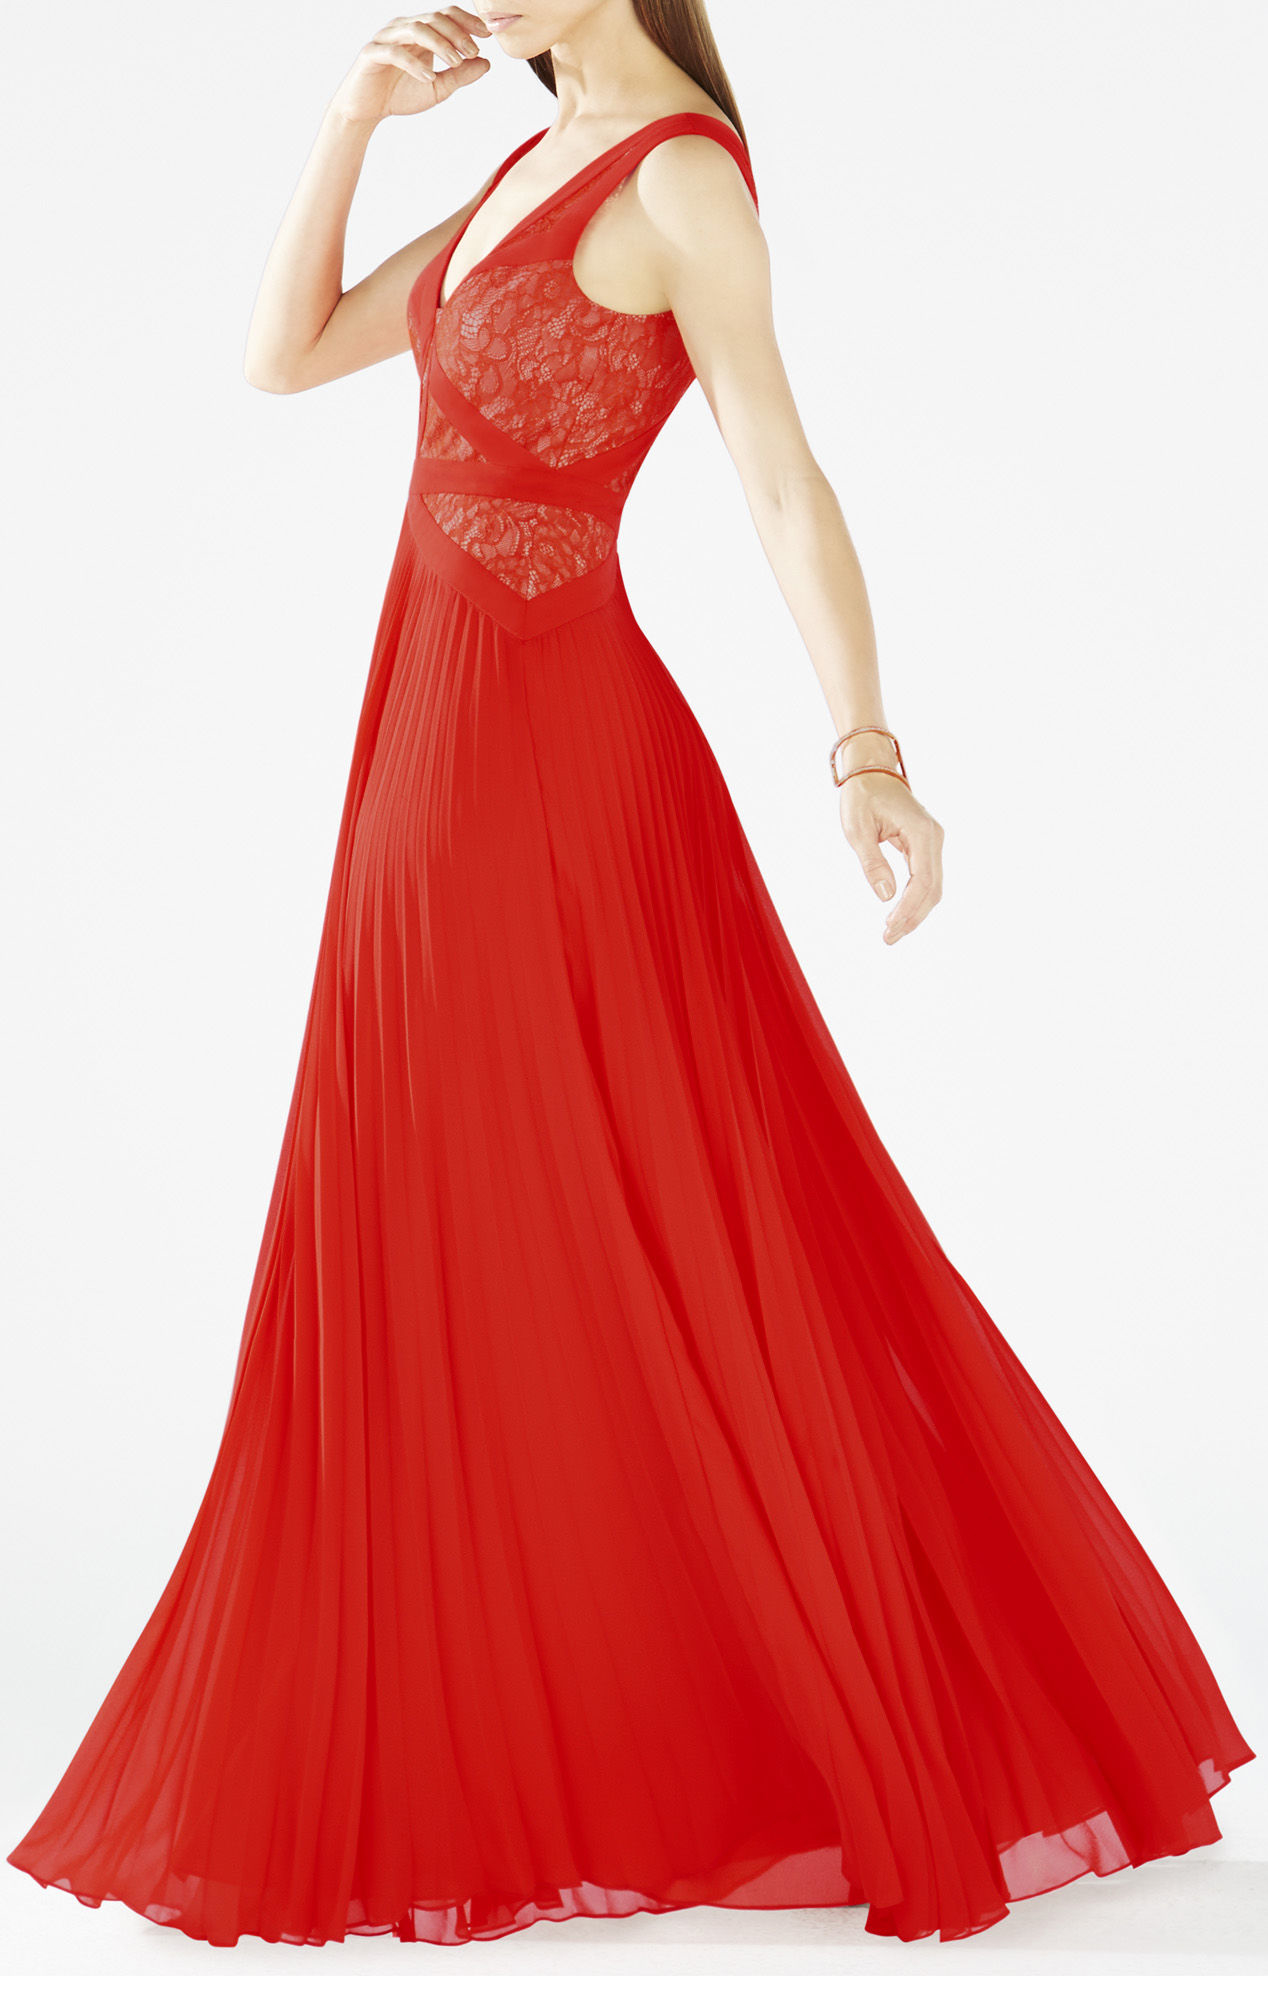 Lyst - Bcbgmaxazria Evonne Lace-blocked Pleated Gown in Red